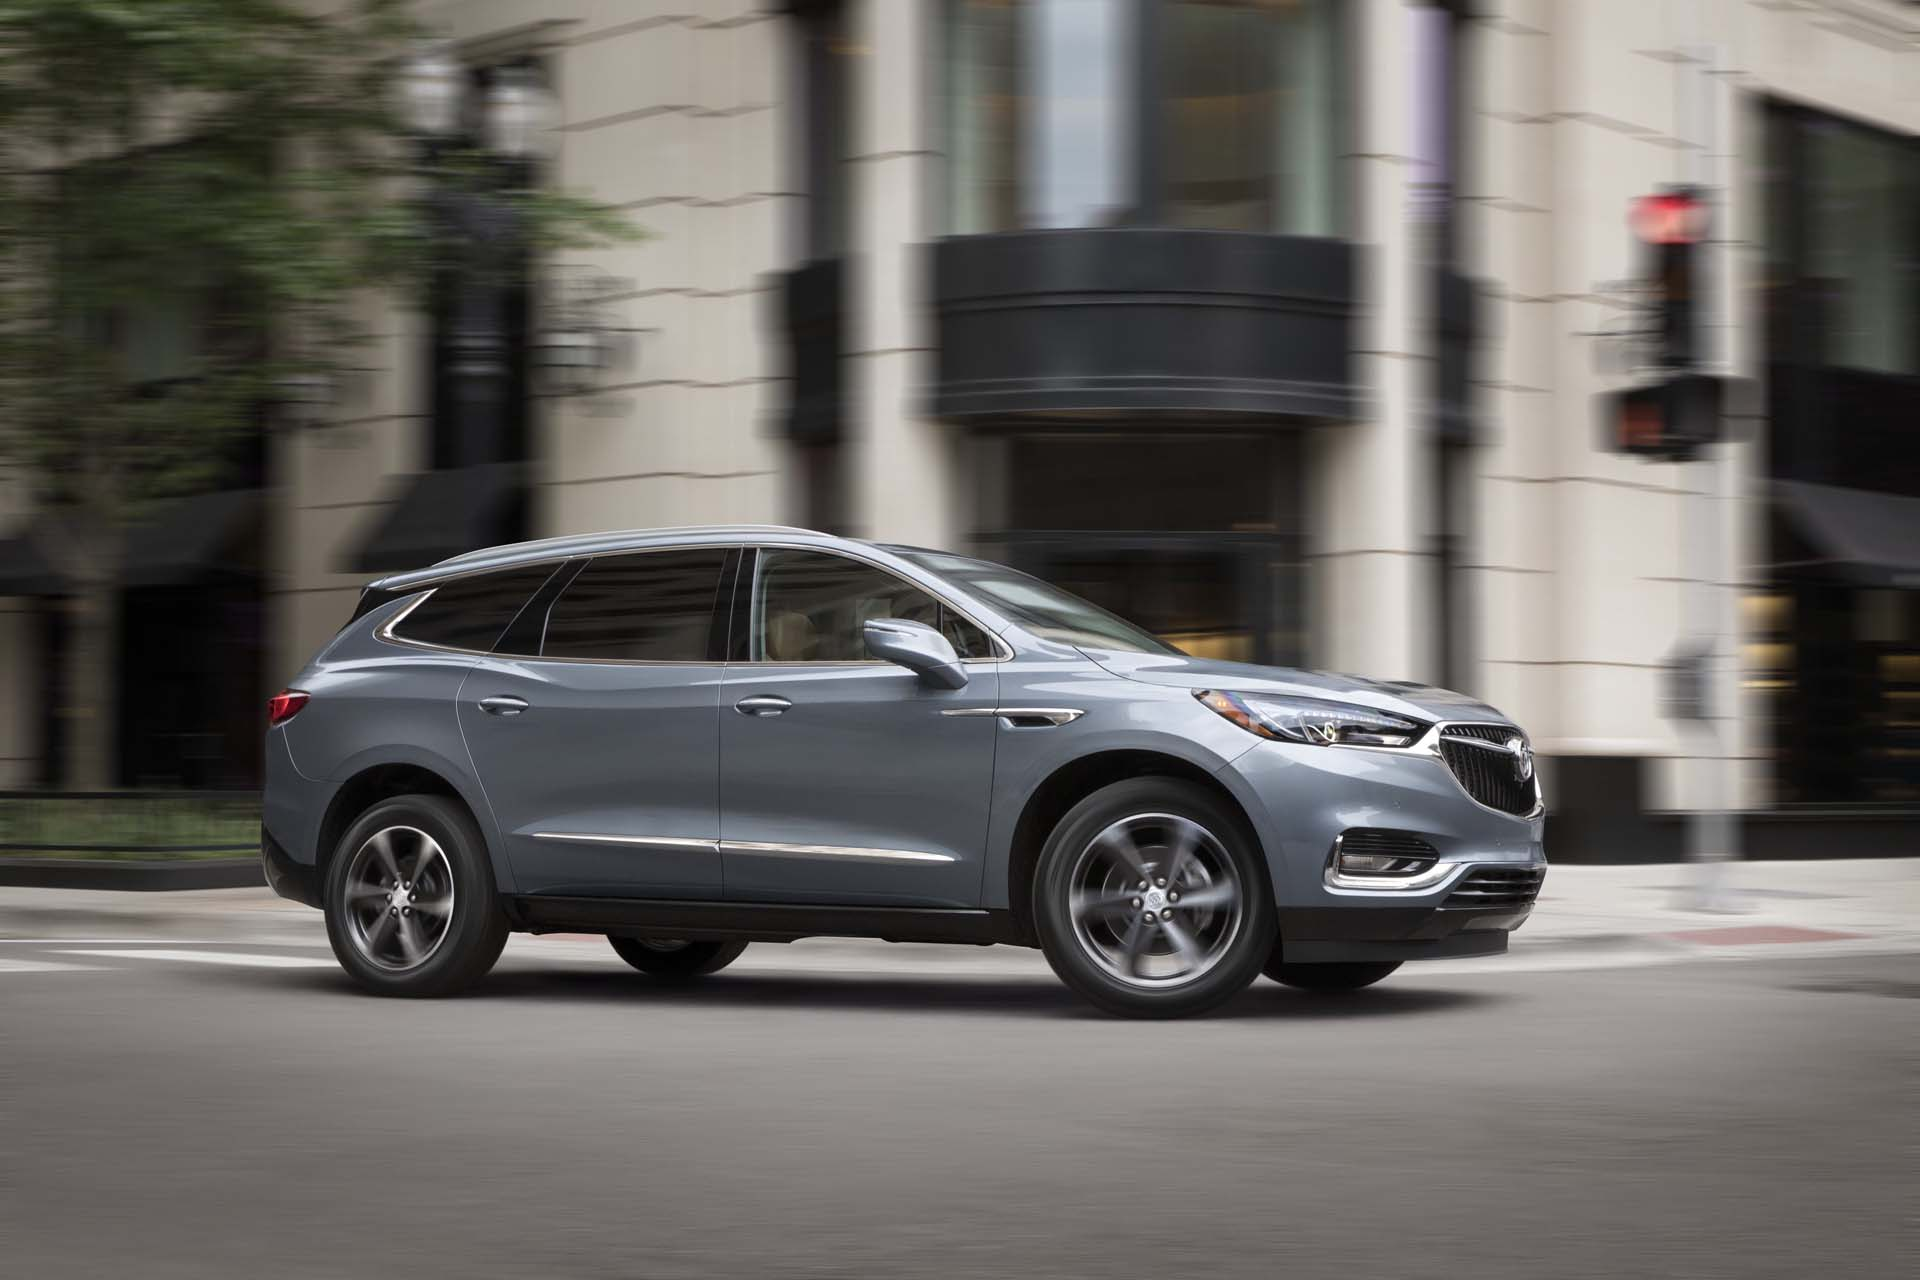 2019 Buick Enclave Review, Ratings, Specs, Prices, And